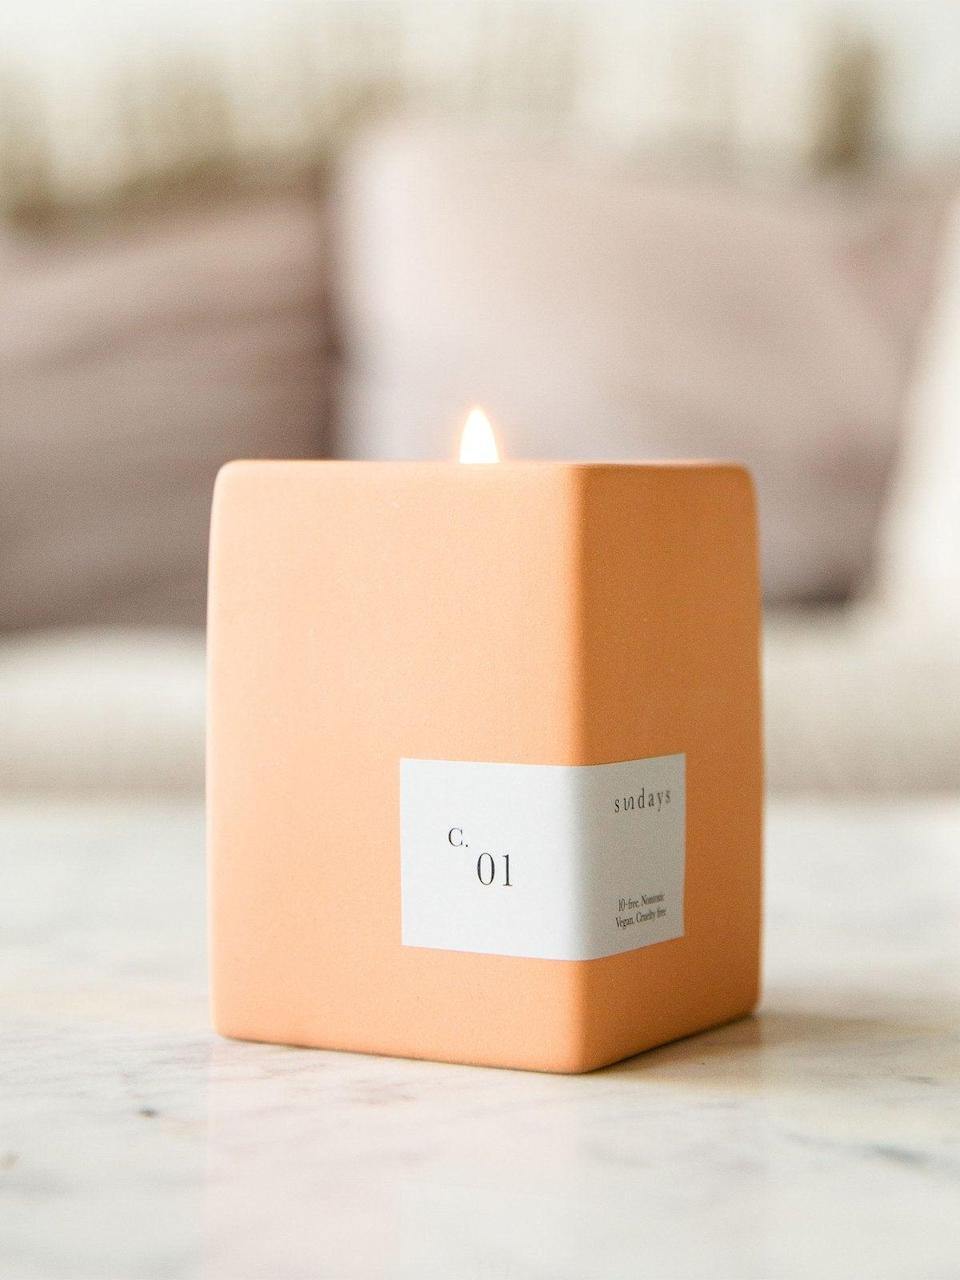 """<h2>Standard Dose Smoked Hemp Candle</h2><br>Standard Dose is the place to be for new wave CBD products and cannabis accessories. This smoked hemp soybean wax candle will have your living space smelling like lilac, hemp flower, green fir needle, and lemon — in sum, a relaxing forest getaway).<br><br><em>Shop</em> <strong><em><a href=""""https://standarddose.com/"""" rel=""""nofollow noopener"""" target=""""_blank"""" data-ylk=""""slk:Standard Dose"""" class=""""link rapid-noclick-resp"""">Standard Dose</a></em></strong><br><br><strong>Standard Dose</strong> Smoked Hemp Candle, $, available at <a href=""""https://go.skimresources.com/?id=30283X879131&url=https%3A%2F%2Fstandarddose.com%2Fproducts%2Fsundays-smoked-hemp-candle"""" rel=""""nofollow noopener"""" target=""""_blank"""" data-ylk=""""slk:Standard Dose"""" class=""""link rapid-noclick-resp"""">Standard Dose</a>"""